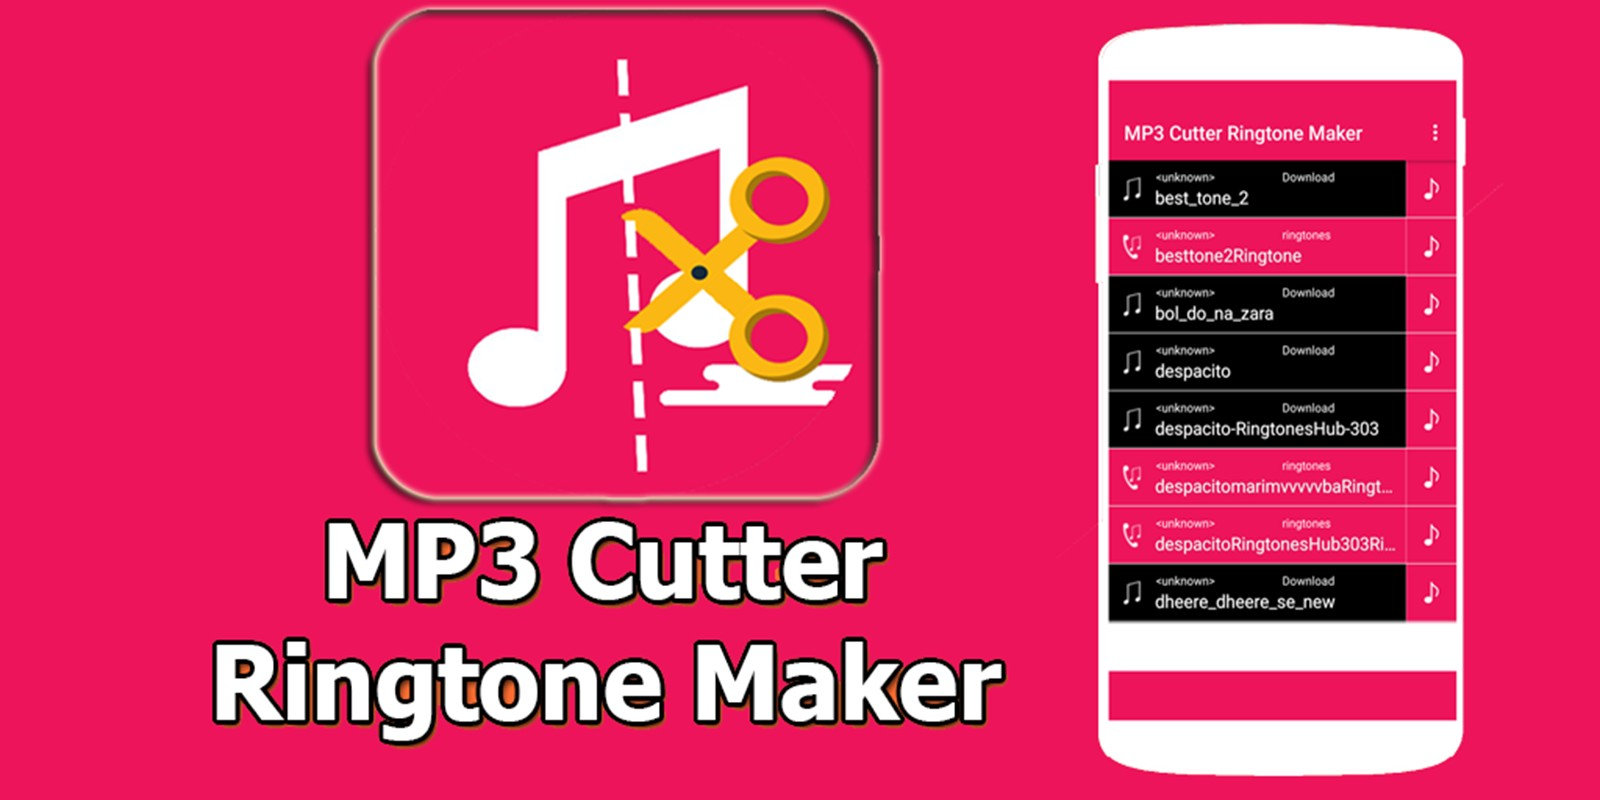 MP3 Cutter Ringtone Maker Android